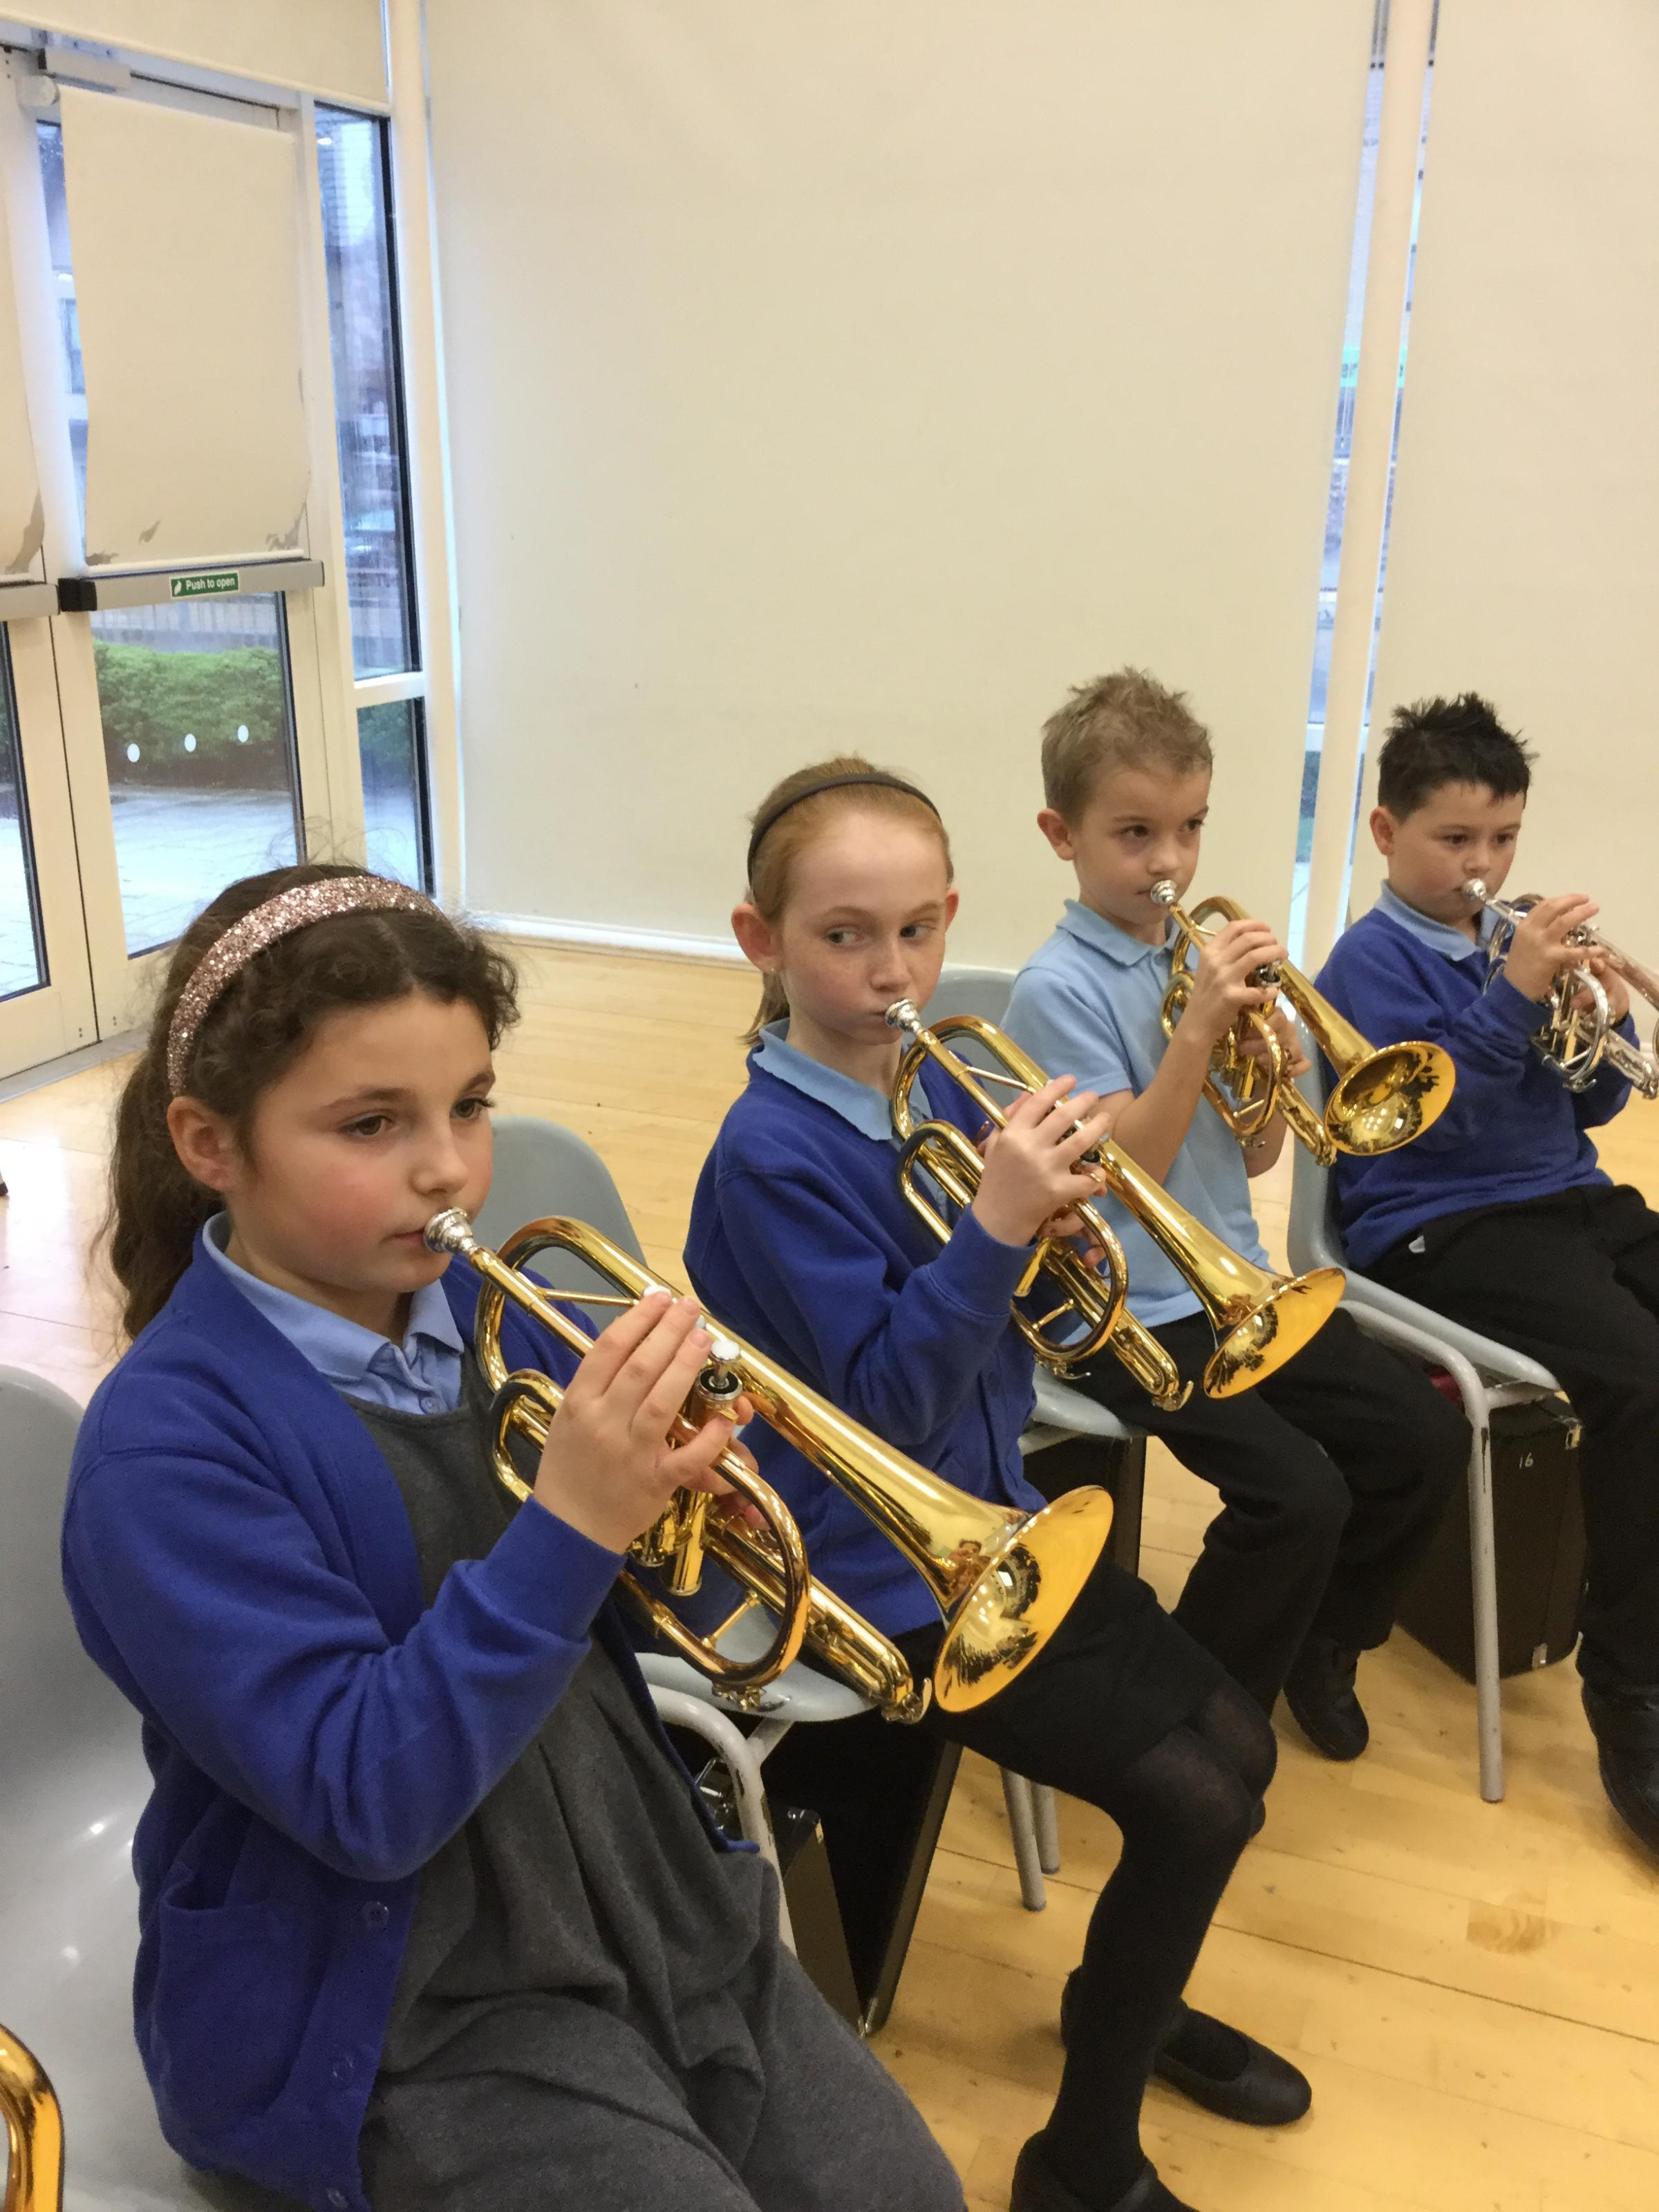 Students at Endeavour Primary School showed off their skills